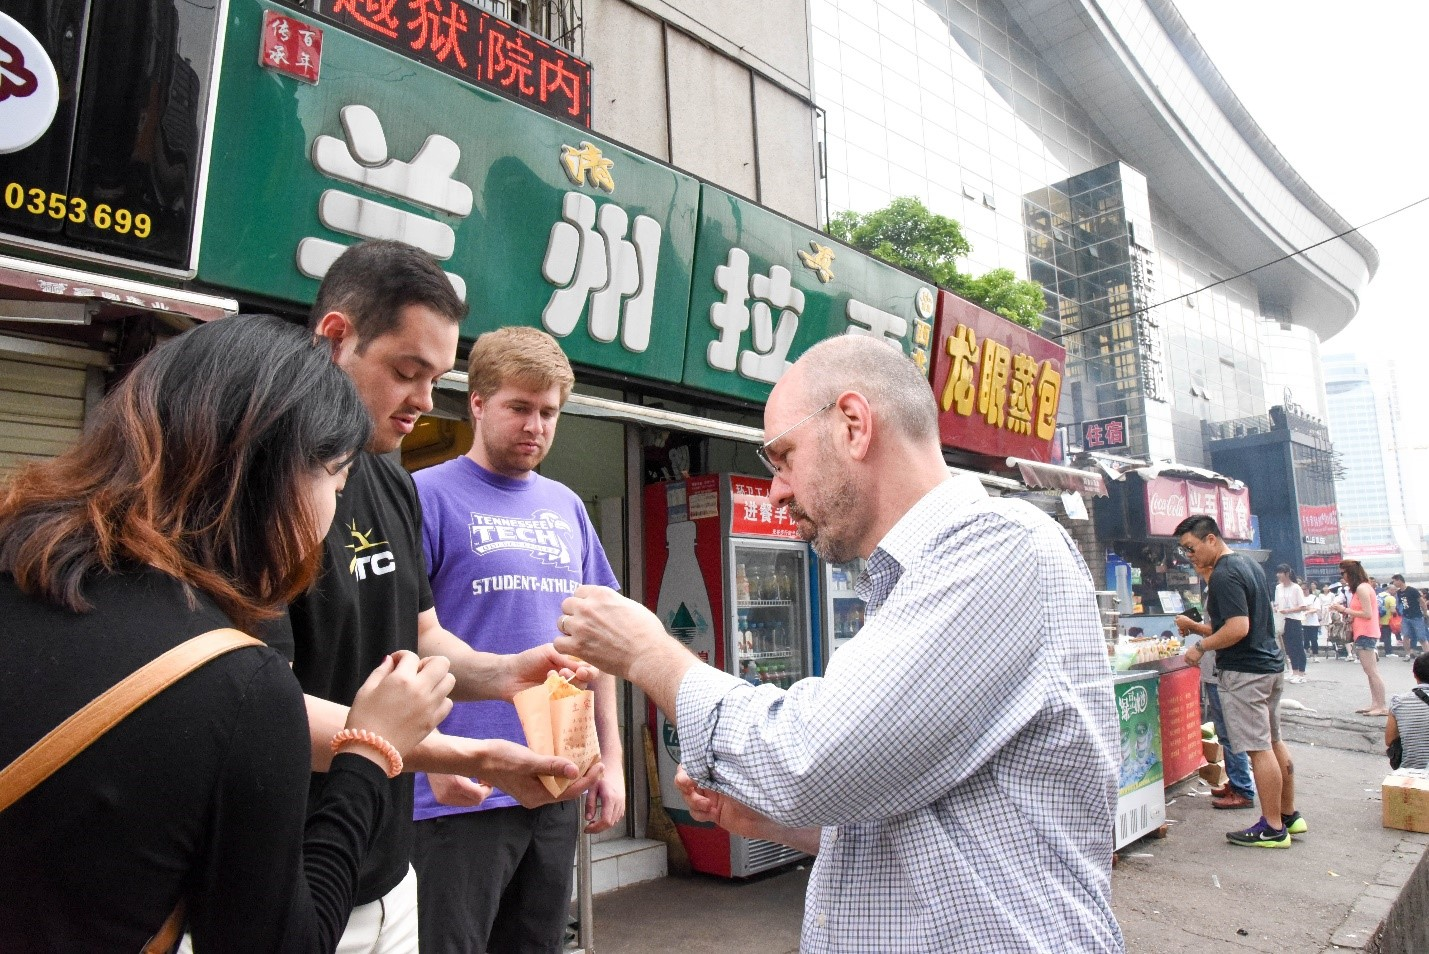 Uwe Brandes talking with students in front of a Wuhan Market